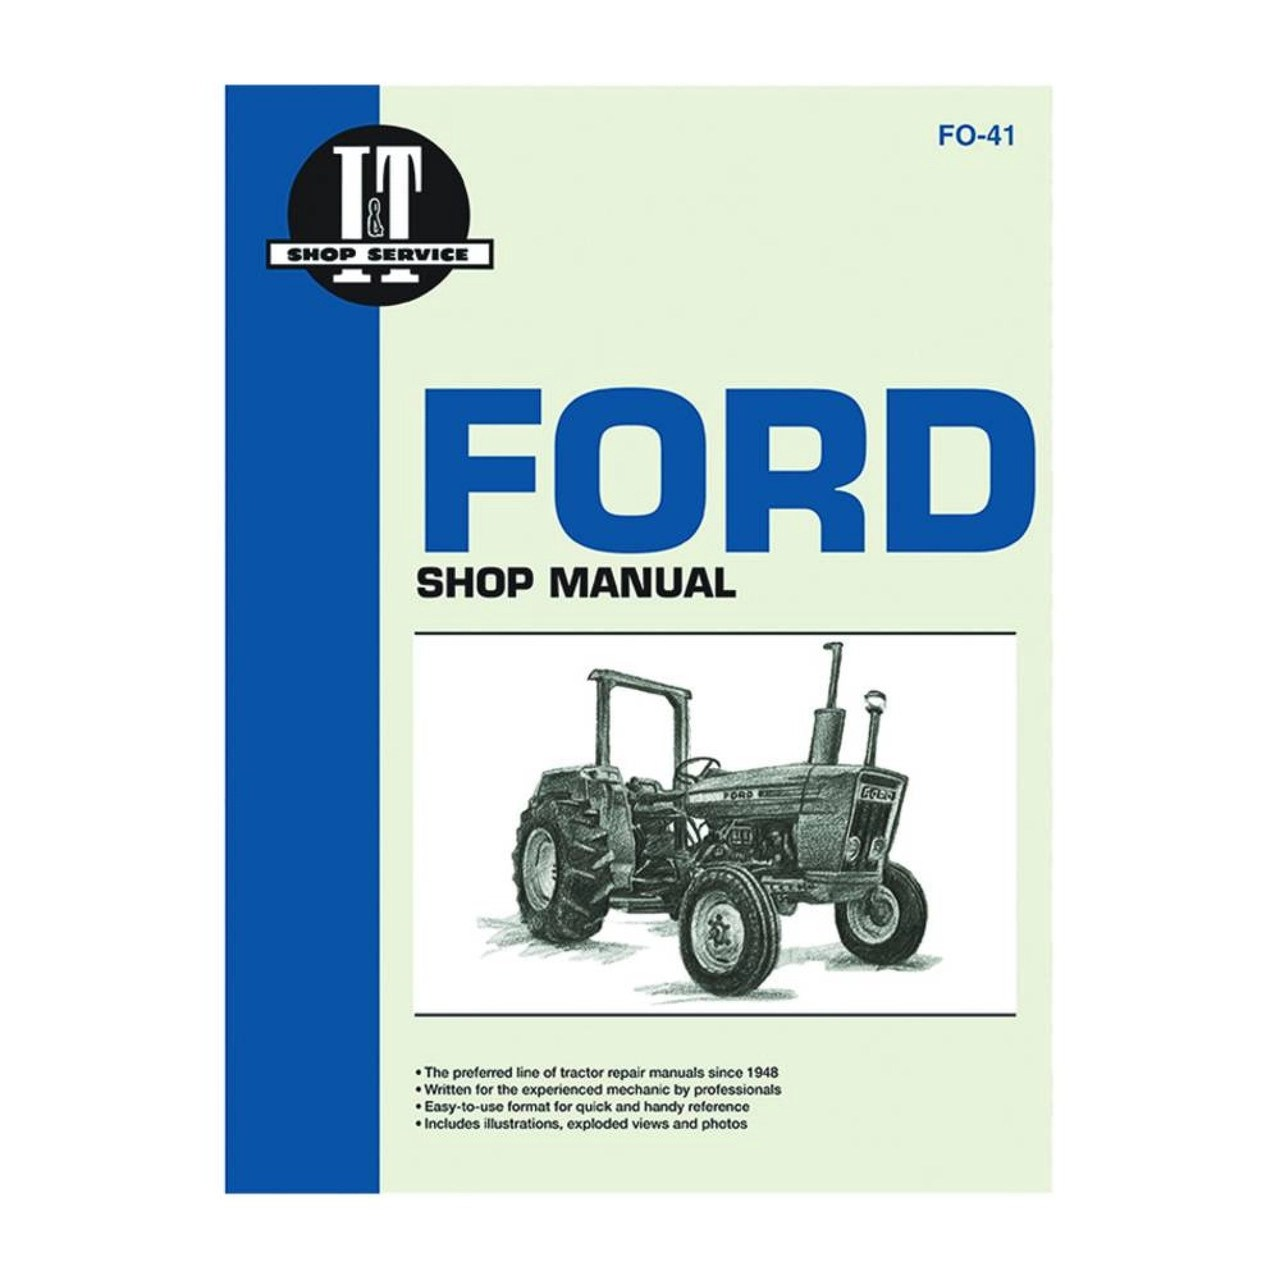 medium resolution of service manual ford new holland tractor fo 41 2310 2600 2610 3600 2310 ford tractor wiring harness diagram